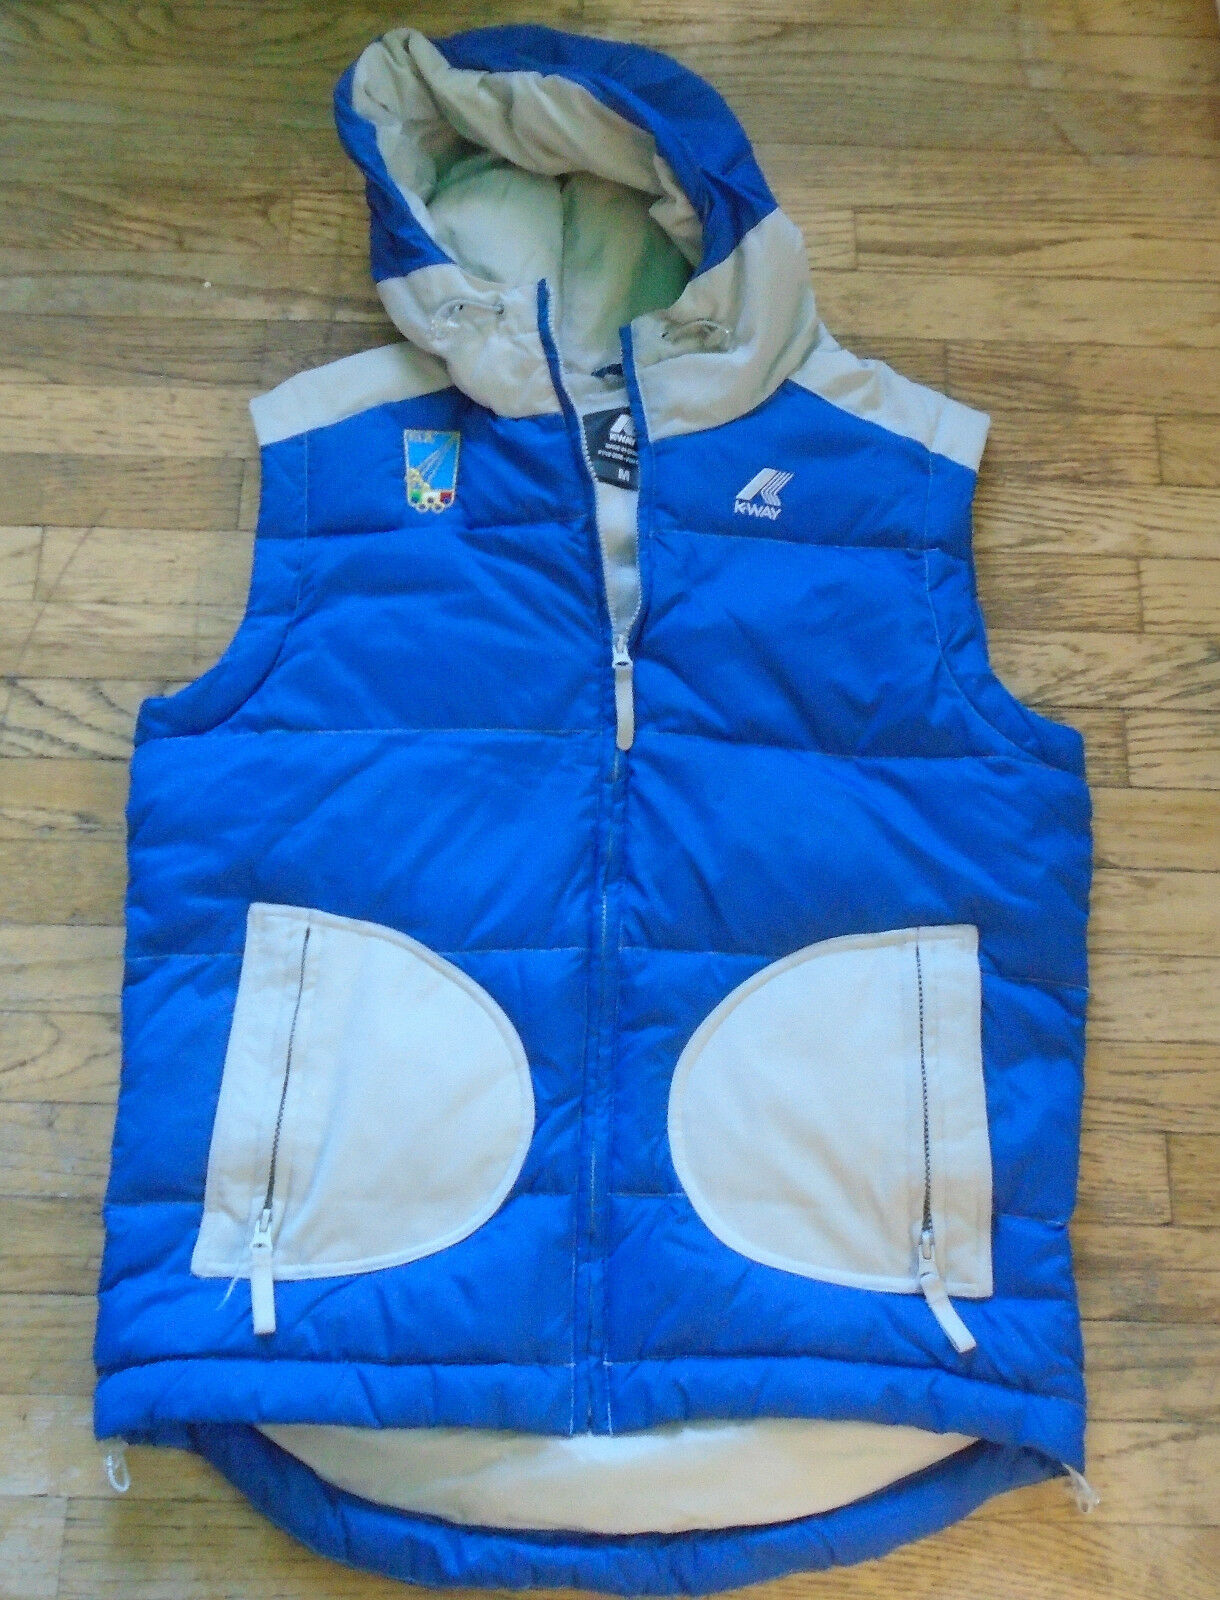 K-WAY Vest FIS Italian Fencing Federation OLYMPICS Logo Size Medium